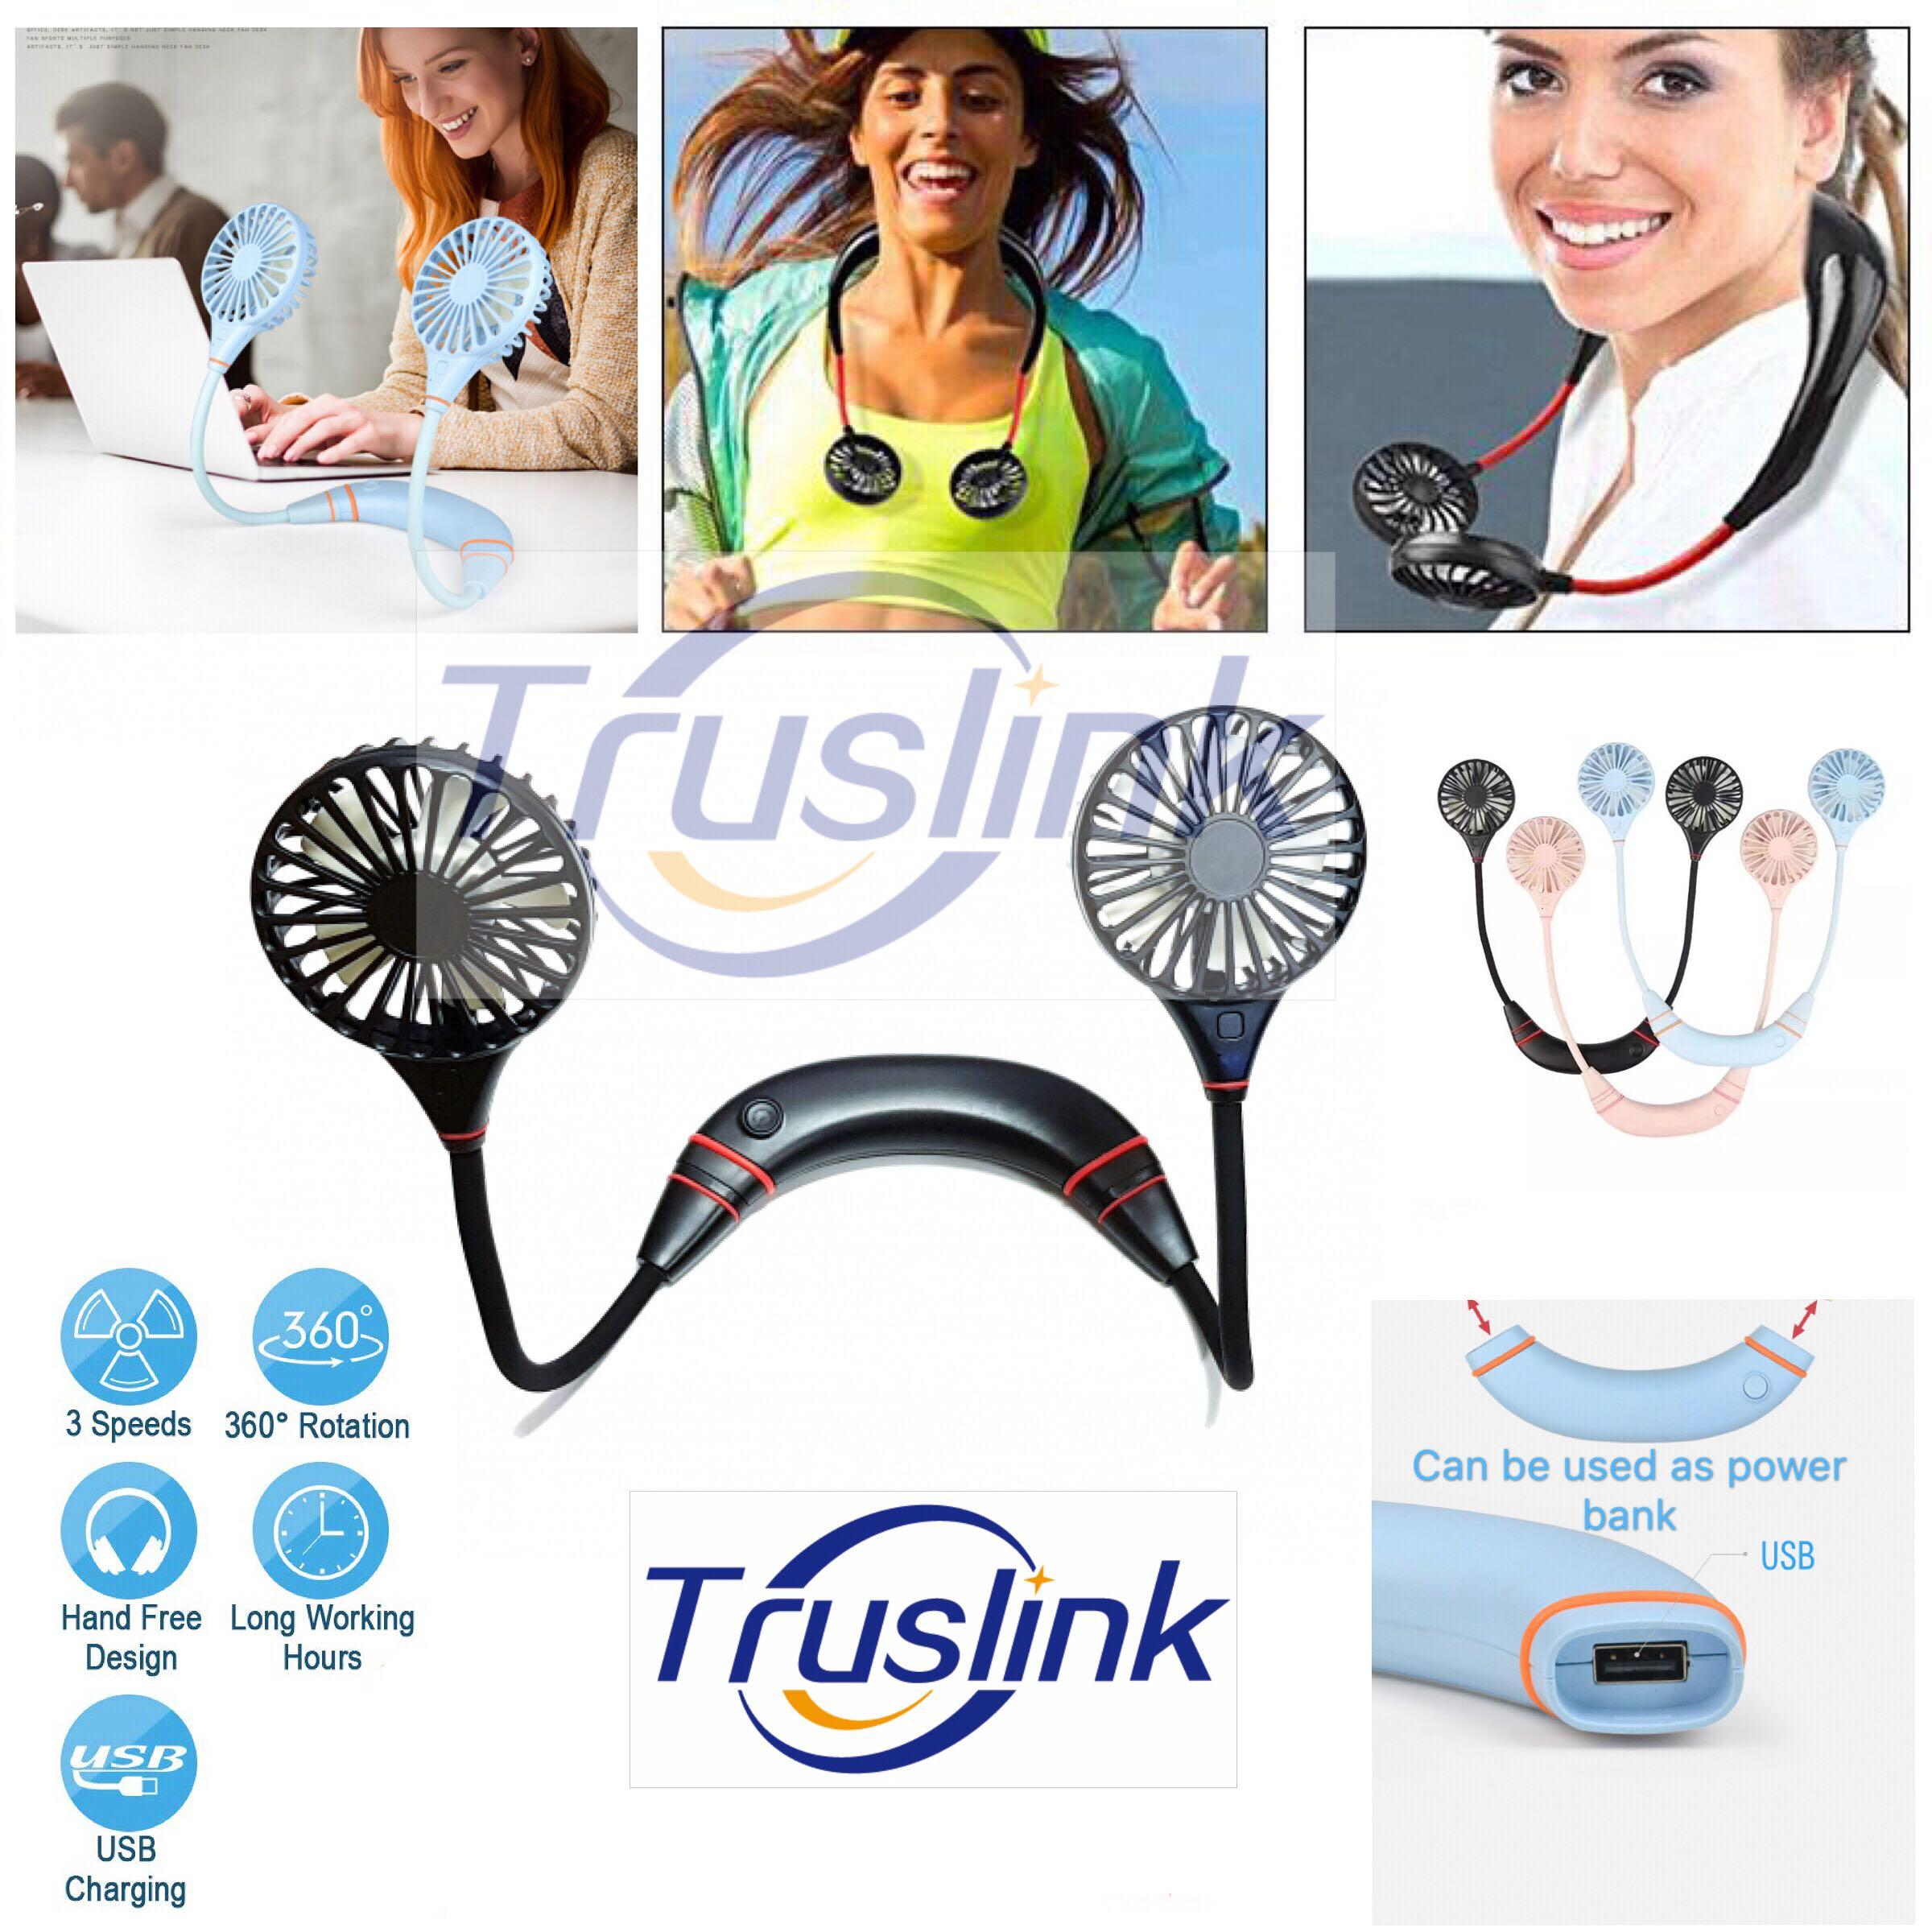 The latest Version 3 Speed Wearable Dual Sports Fans with USB Power Bank Charger Sports Wear Fan Hand Free Personal Neck Fan, Headphone Design Wearable Portable Neckband Mini Fan with USB Rechargeable for Traveling Outdoor Indoor